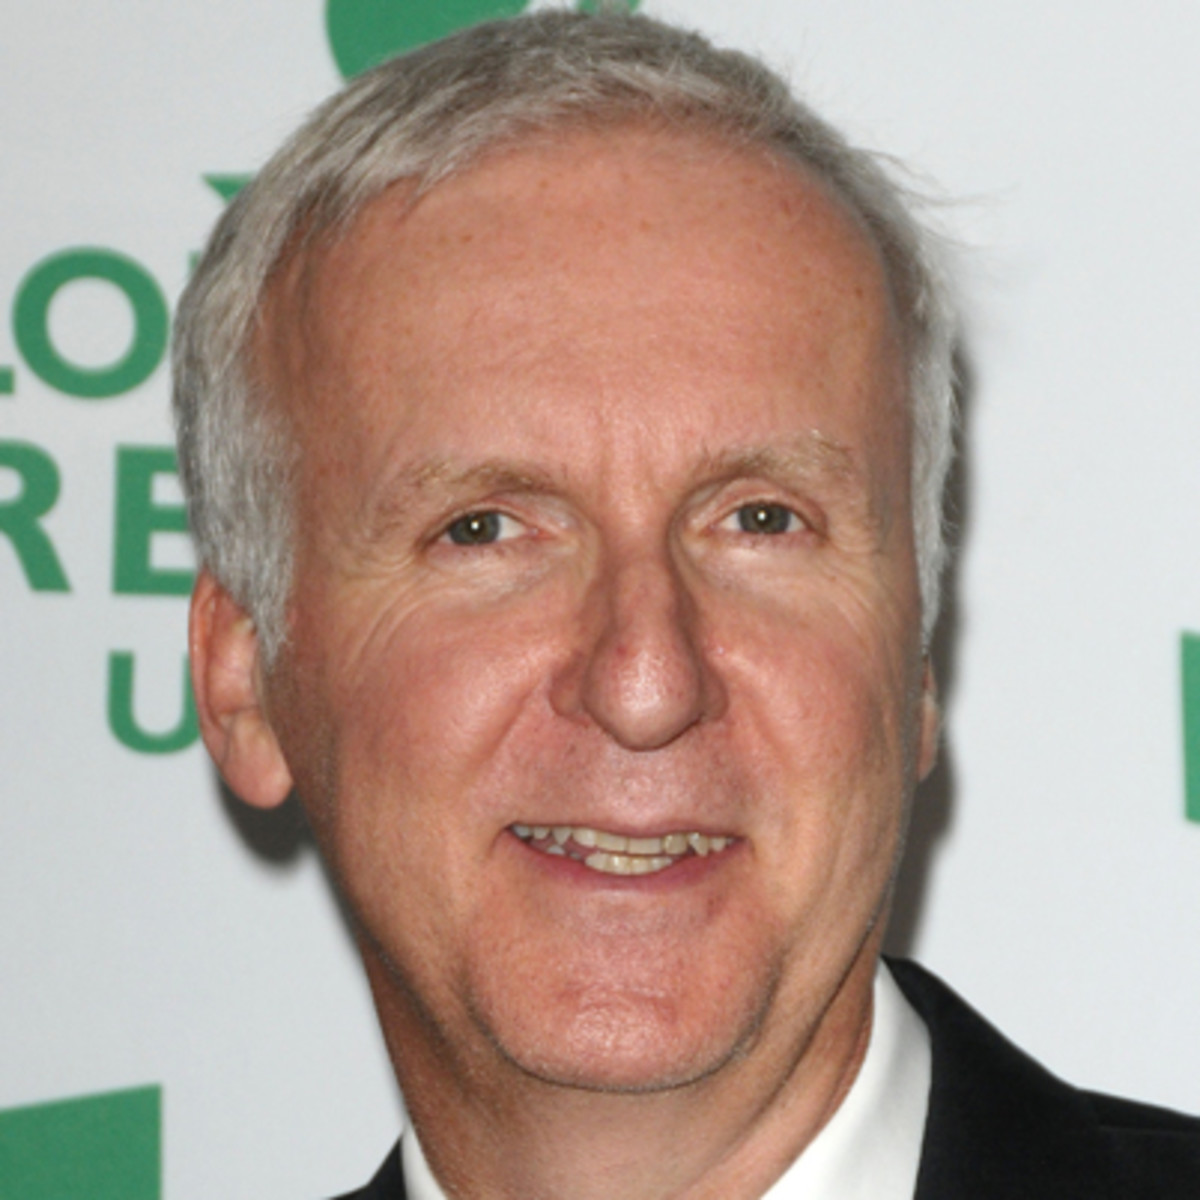 James Cameron: Producer, Director